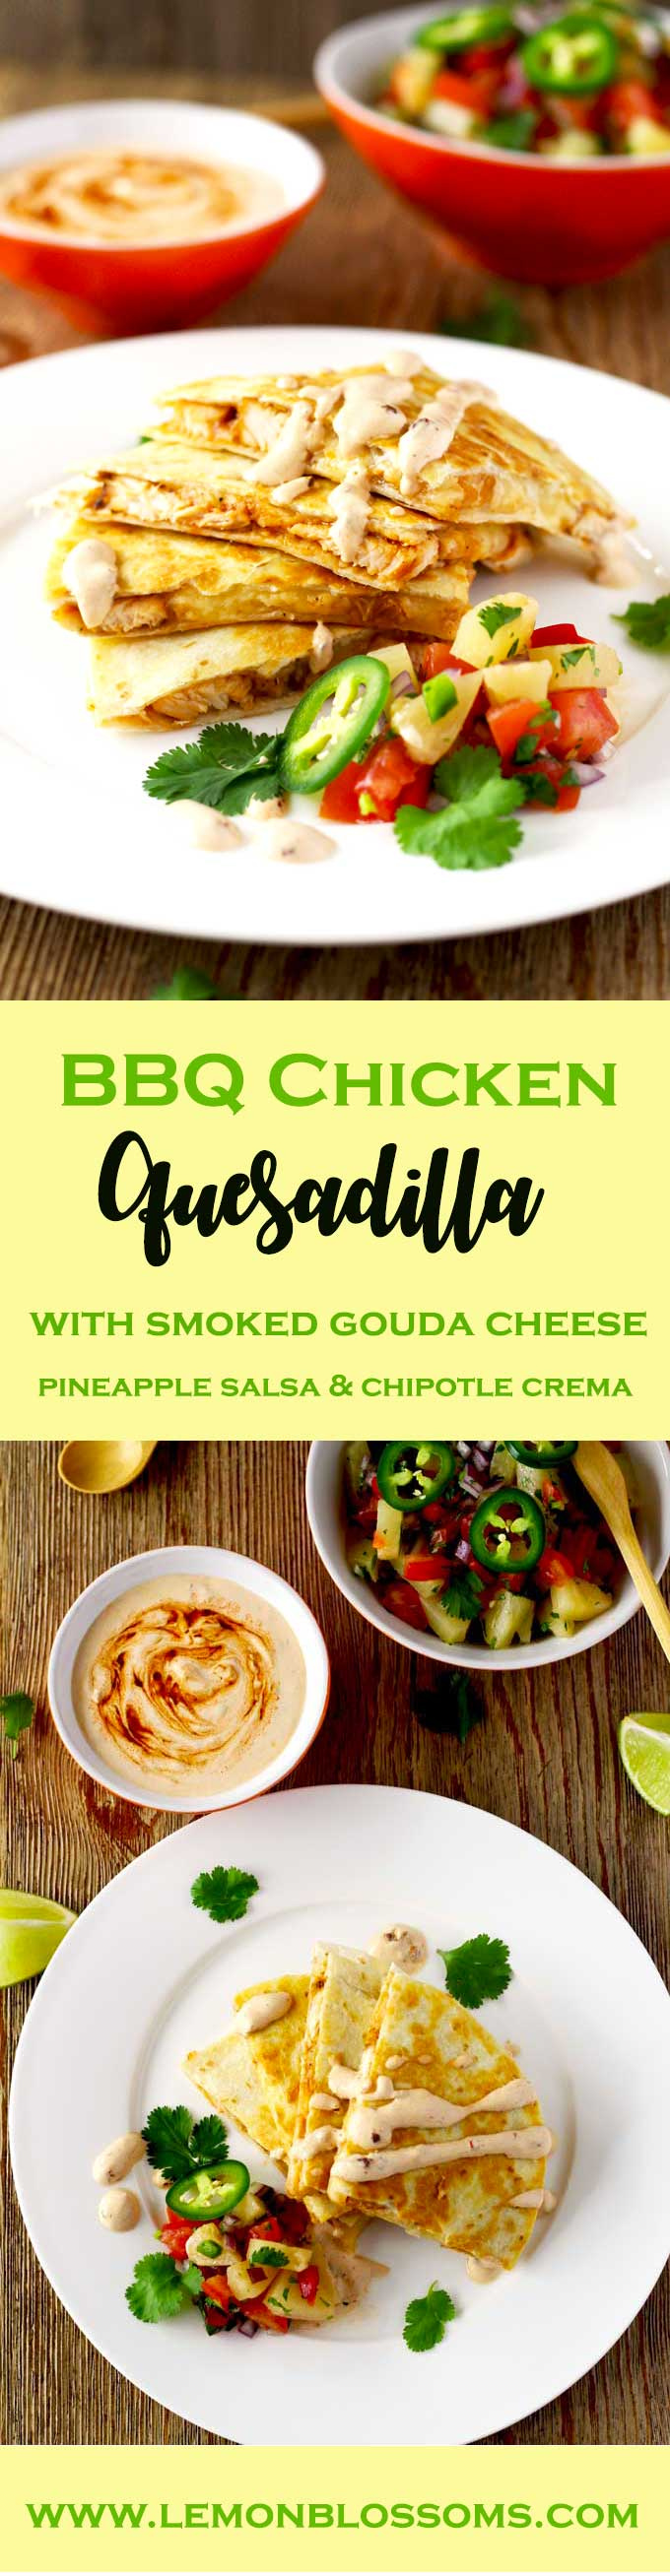 This easy to make Tex Mex inspired BBQ Chicken Quesadilla with Smoked Gouda Cheese is packed with super flavorful chicken and gooey cheese. Served with a delicious and fruity pineapple salsa and topped with a spicy and smoky Chipotle Crema! Let's sum that up in one word ~ Amazing! Great as a main dish or as an appetizer!!